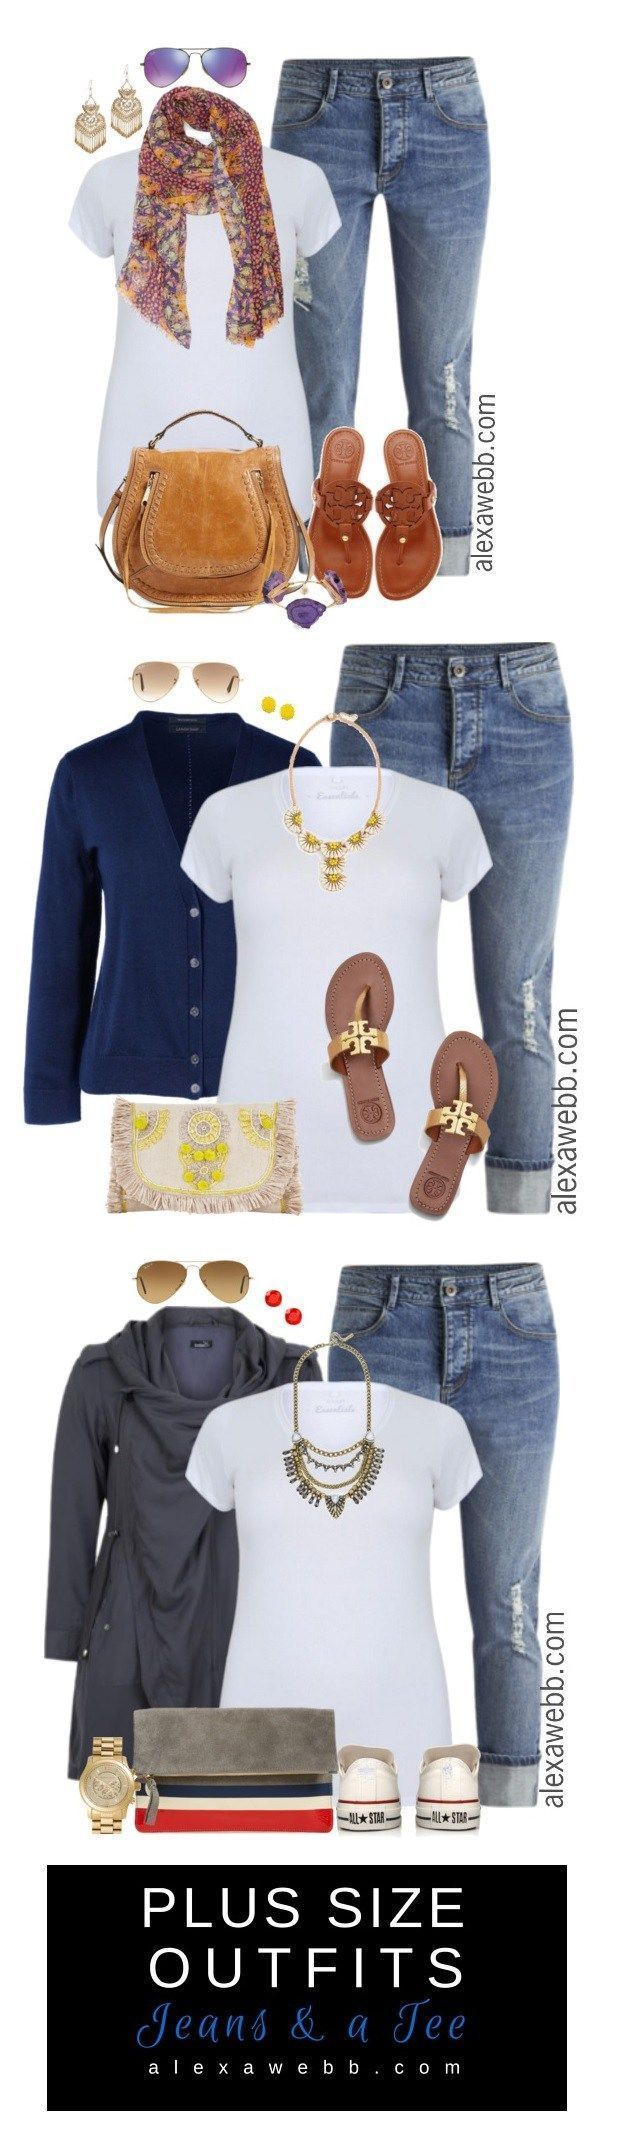 Plus Size Outfit Ideas – Casual Jeans & A Tee II